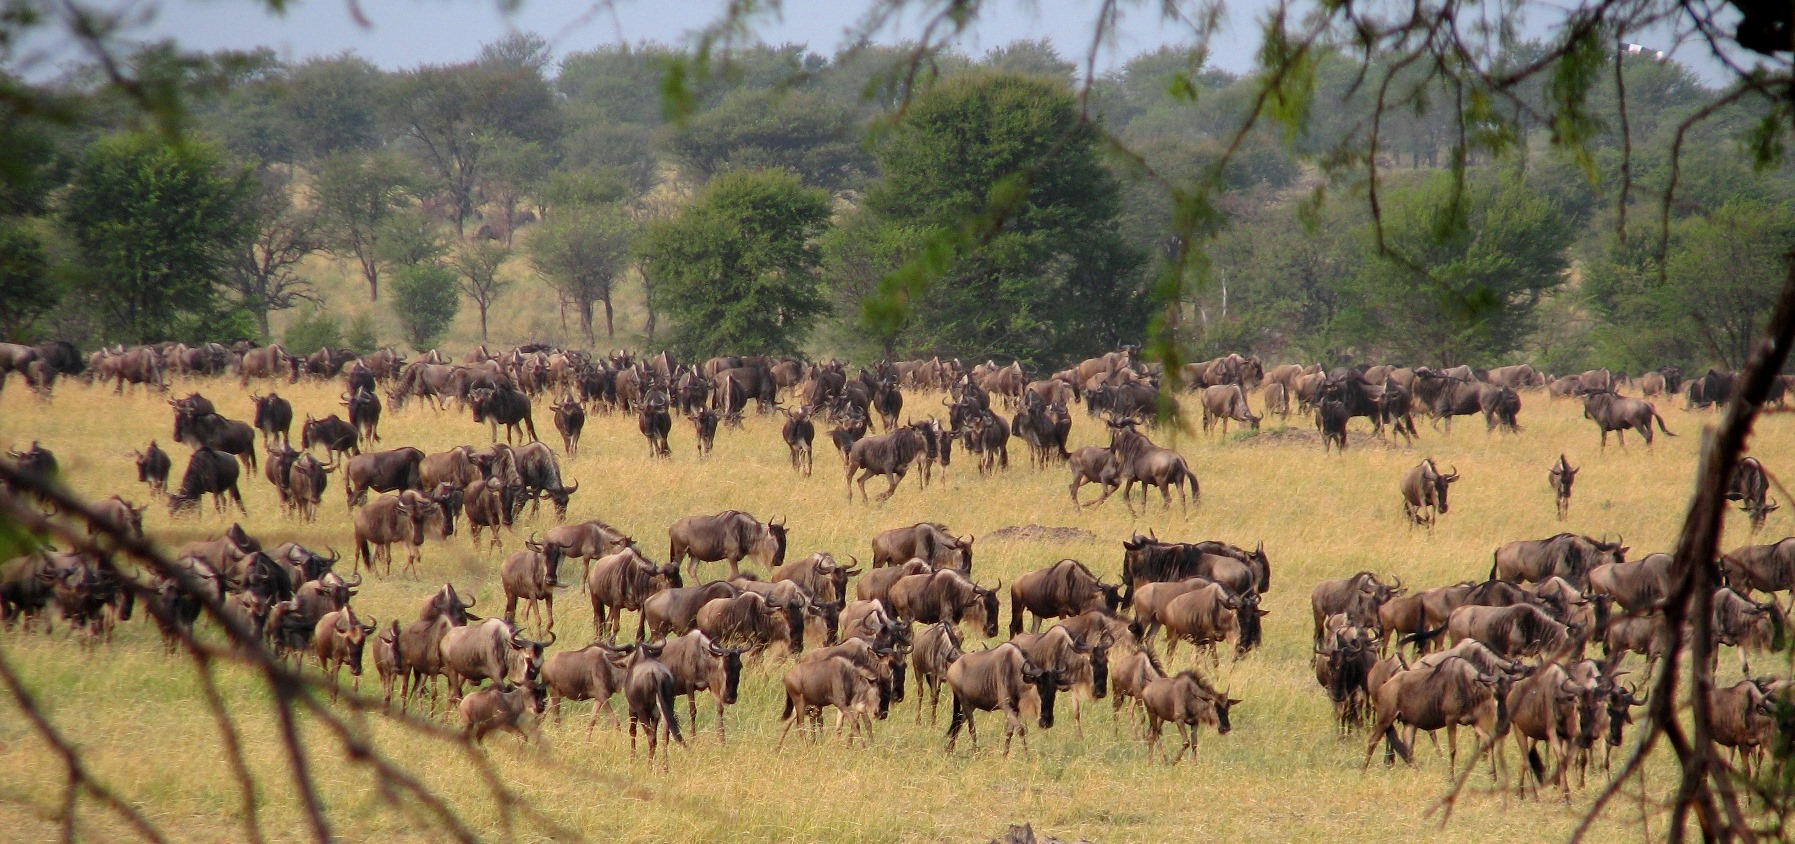 The wildebeest migration makes its way north from Serengeti National Park in Tanzania to Maasai Mara National Reserve in Kenya.